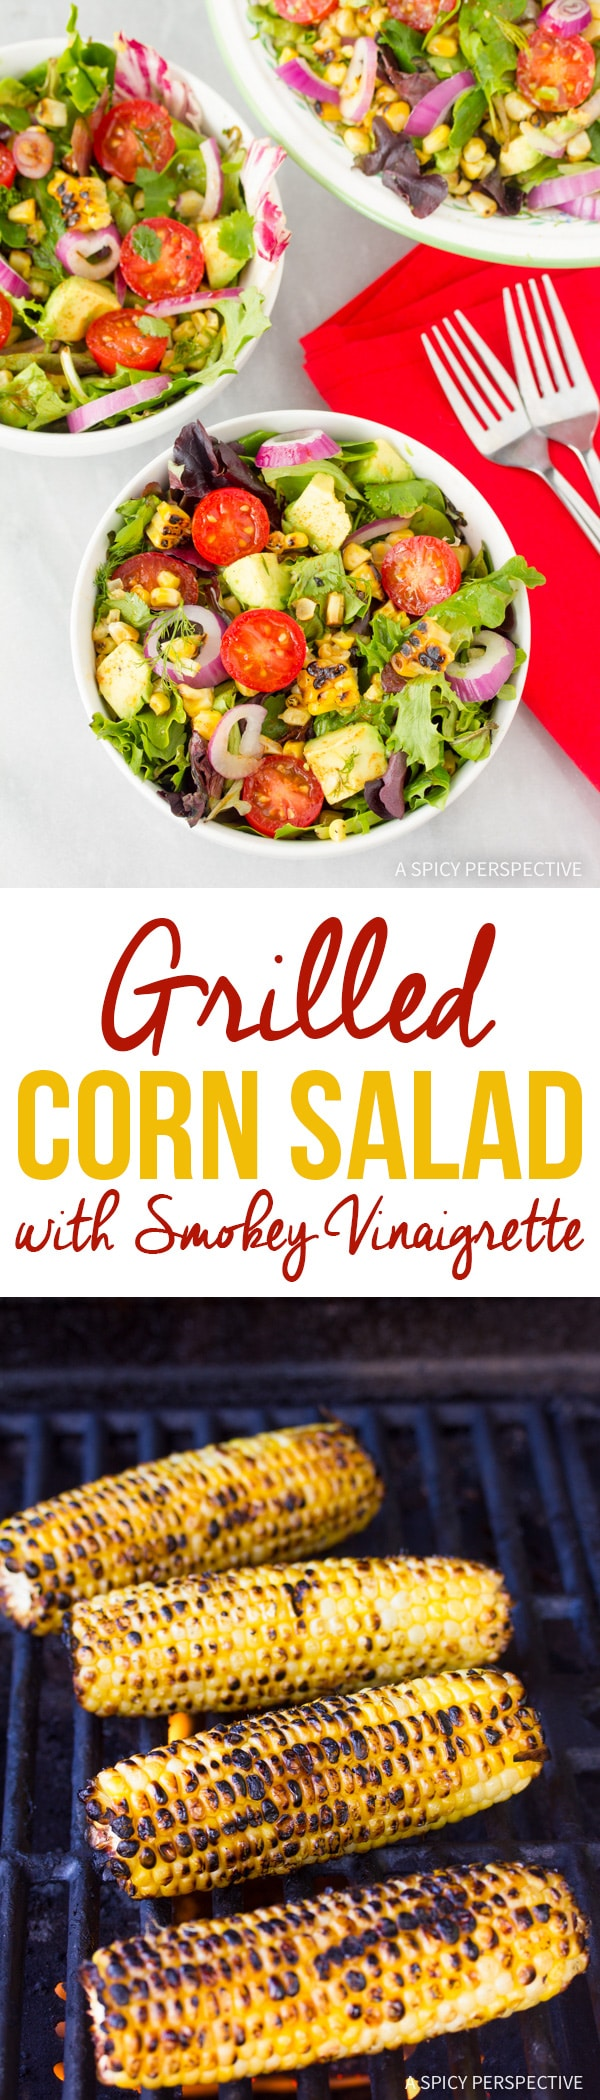 Grilled Corn Salad with Smokey Vinaigrette - A Spicy ...